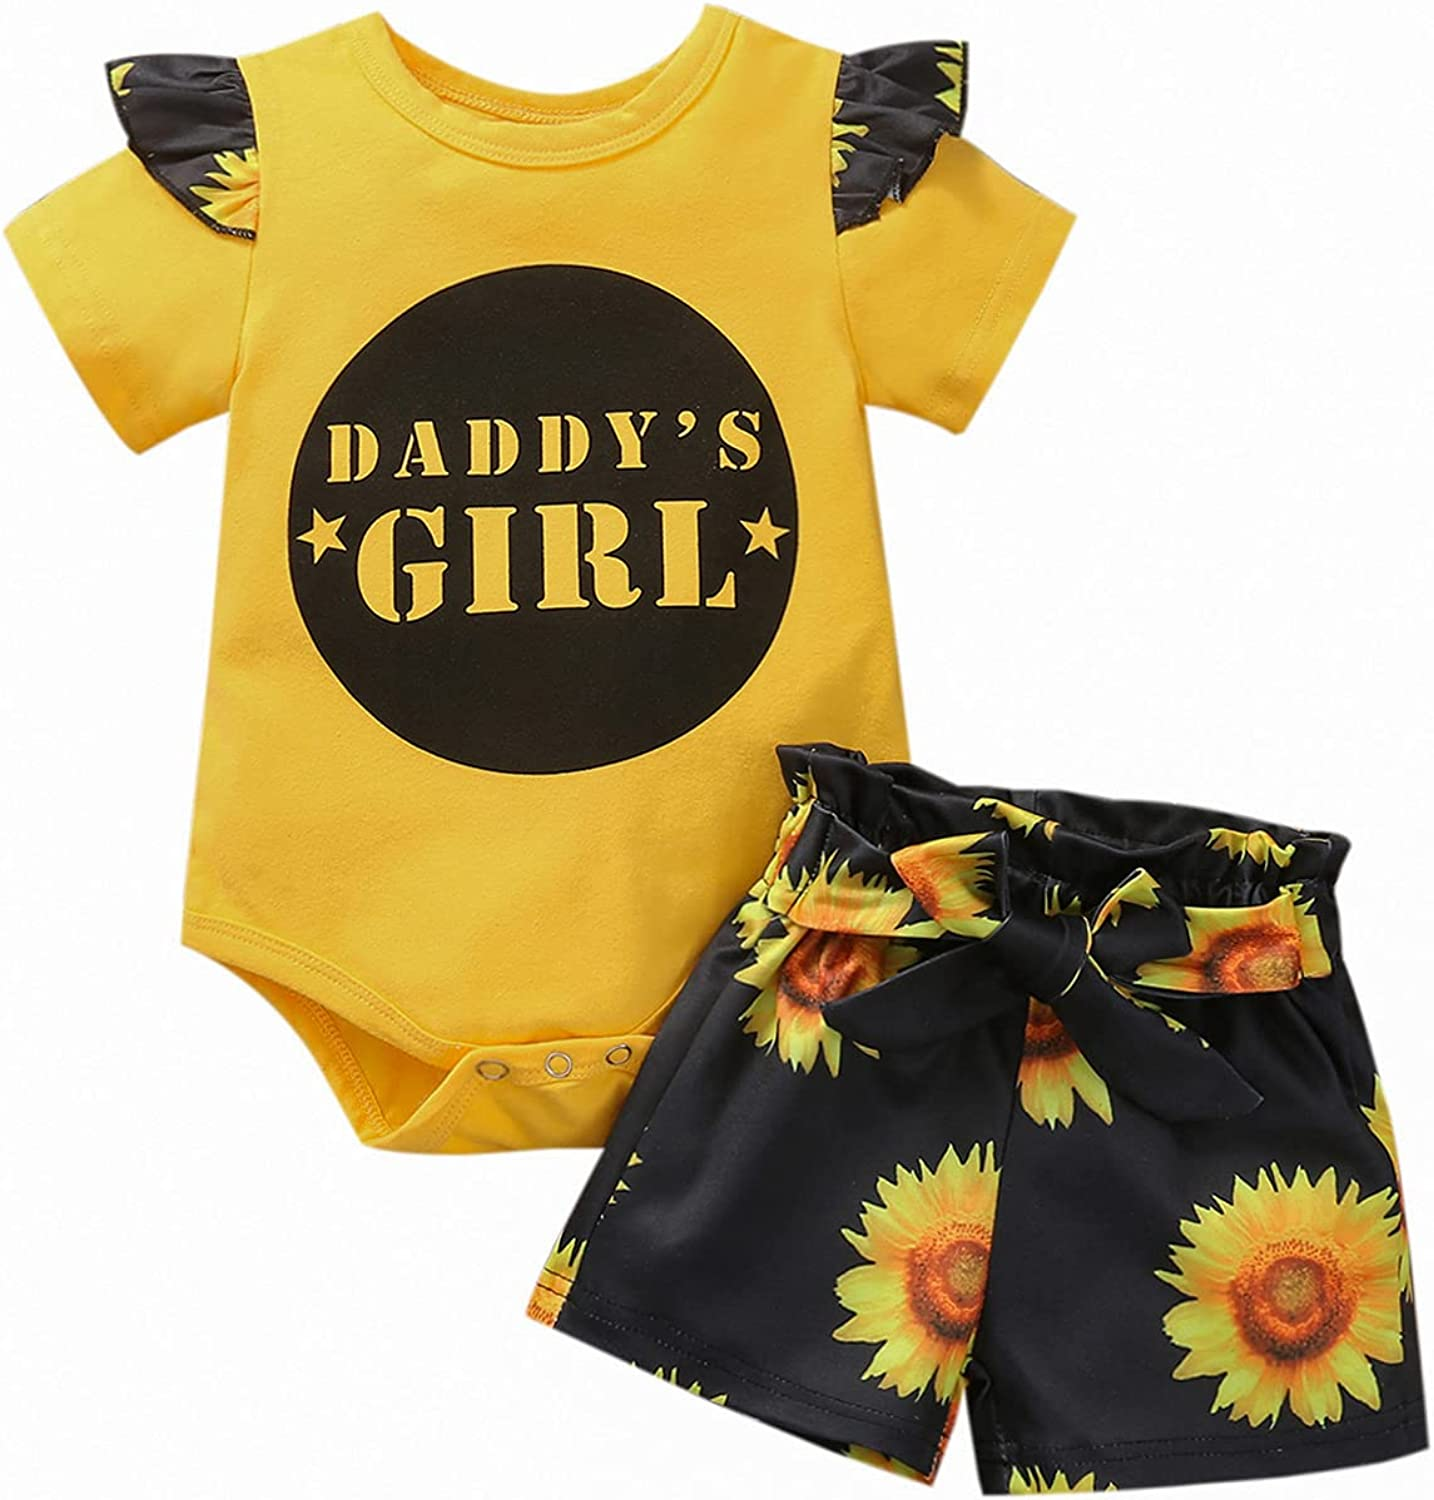 Newborn Infant Baby Girl Clothes Ruffled Sleeve Bodysuit Letter Romper Top Camo Shorts Set Summer Outfits